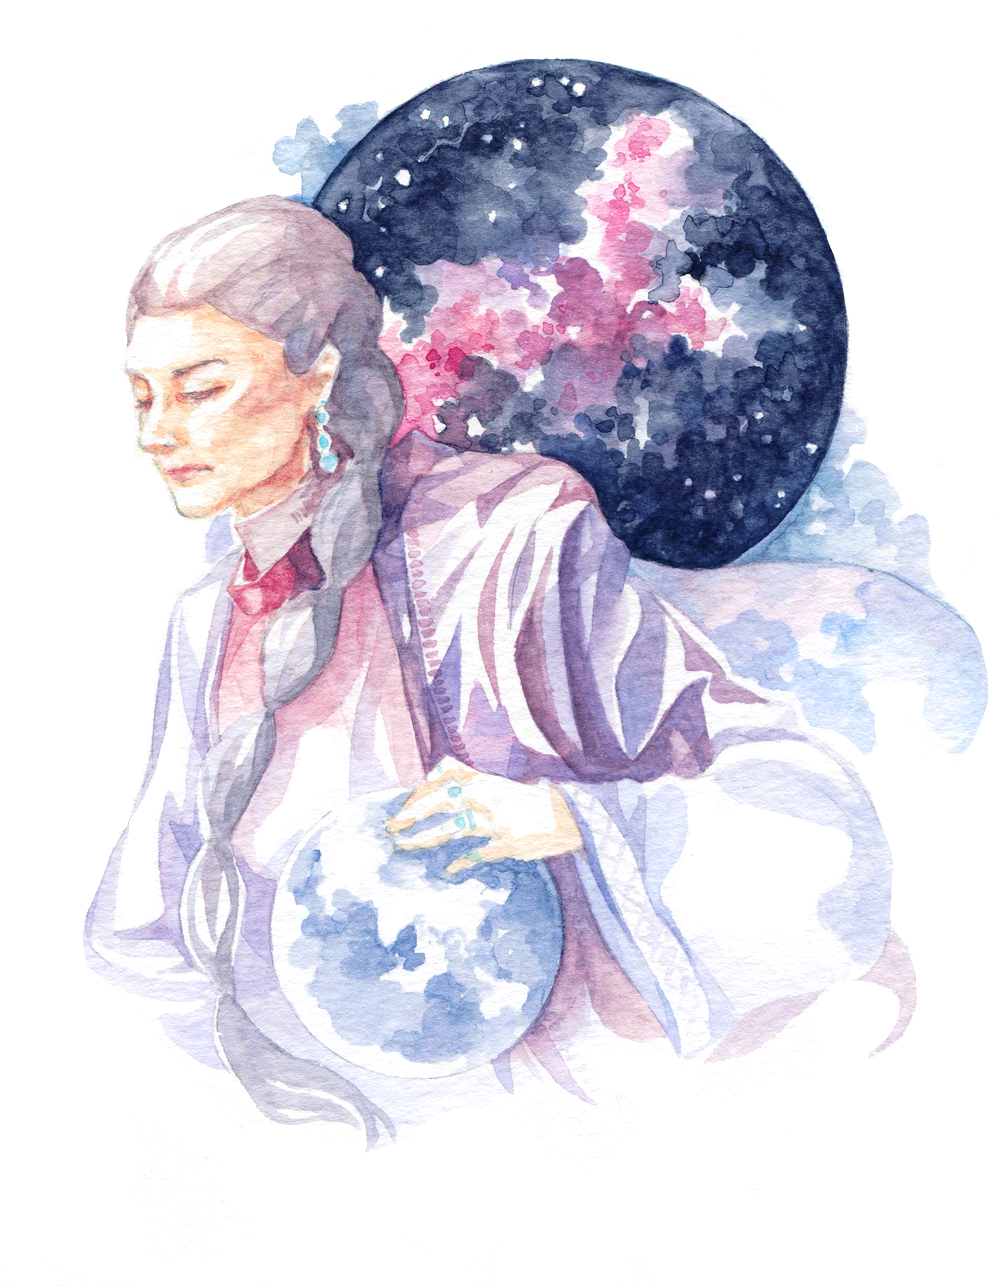 Chrisjen Avasarala | The Expanse | Watercolor Fanart Portrait It's hard to choose a favorite character from the series, but Chrisjen Avasarala is my space mom. Her dialogue in the books is pure gold!